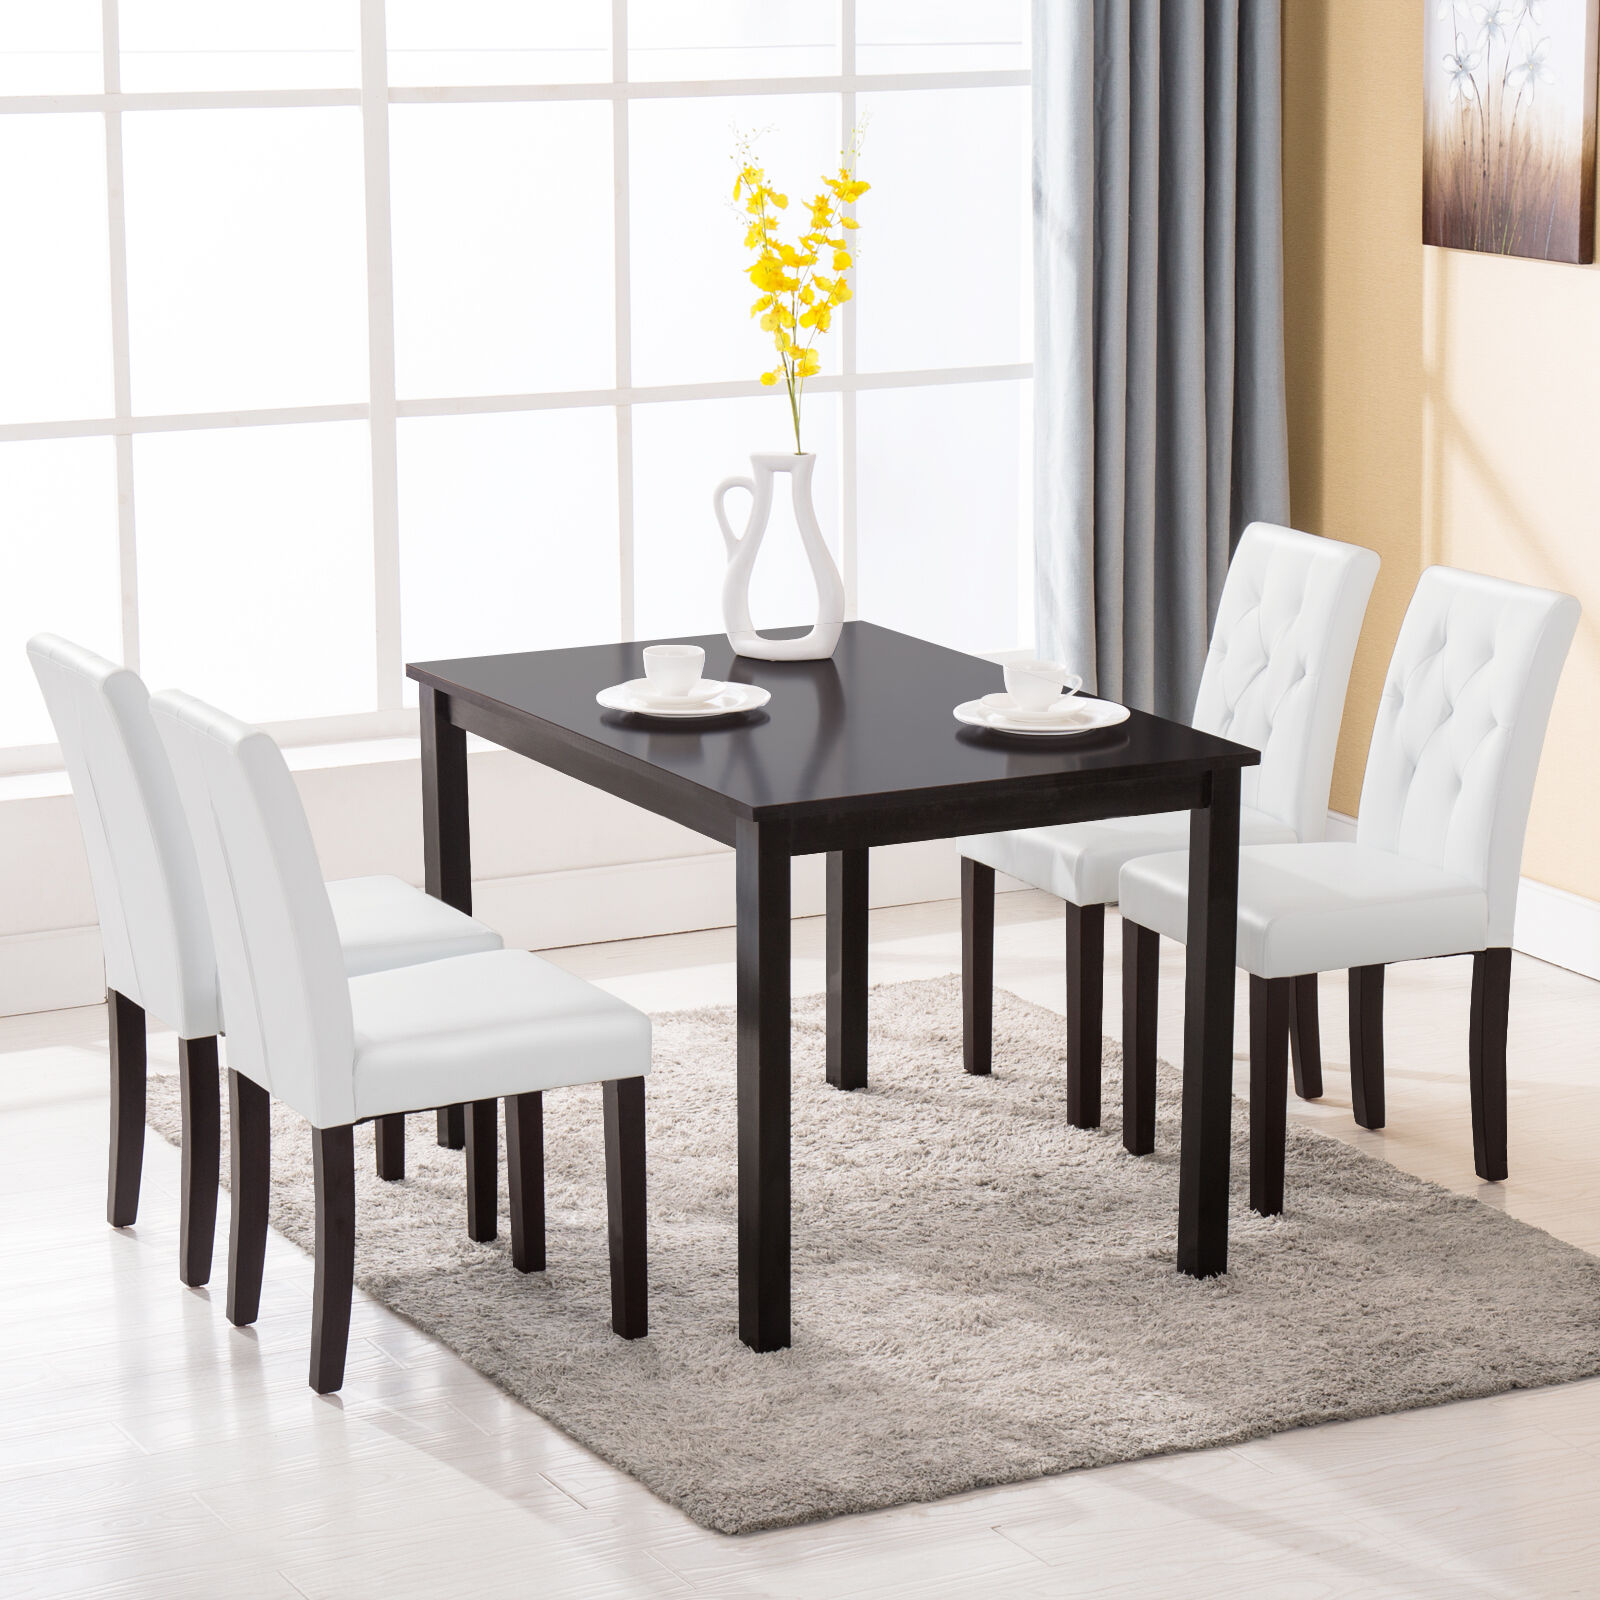 Dining Table Sets Black And White Dining Table 4 Chairs: 5 Piece Dining Table Set 4 Chairs Room Kitchen Dinette